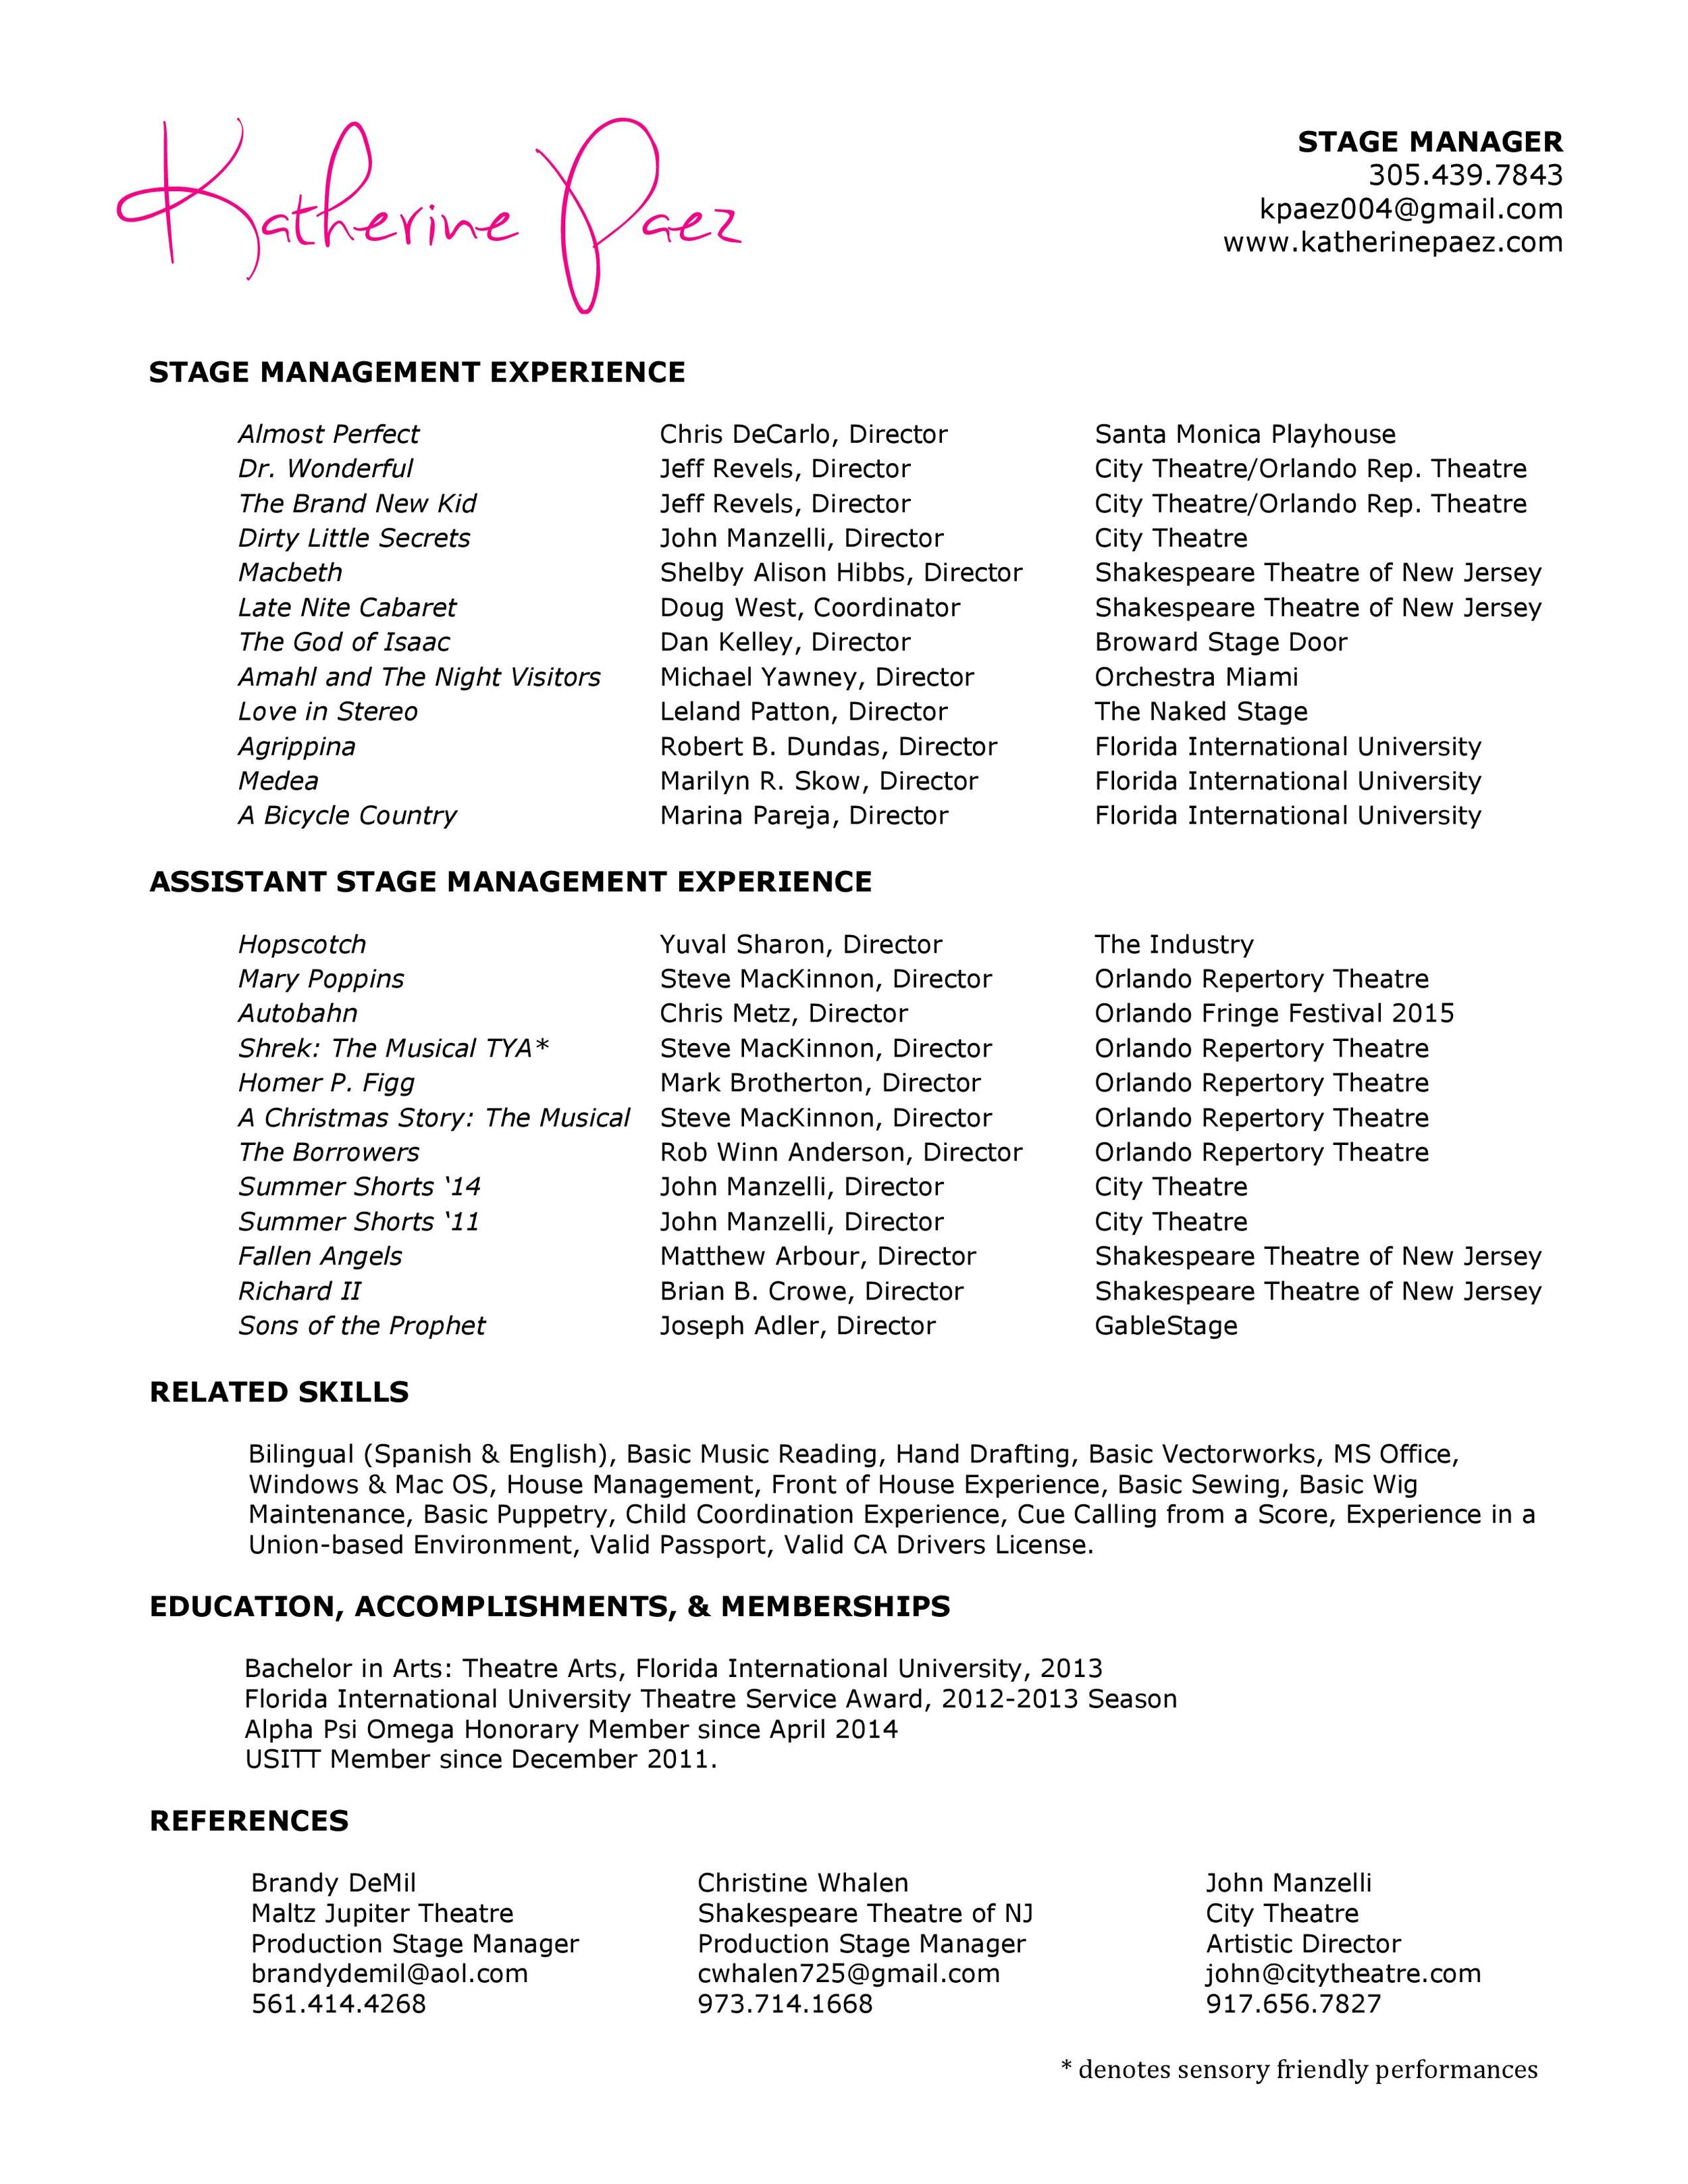 Stage Manager Resume Templates Template